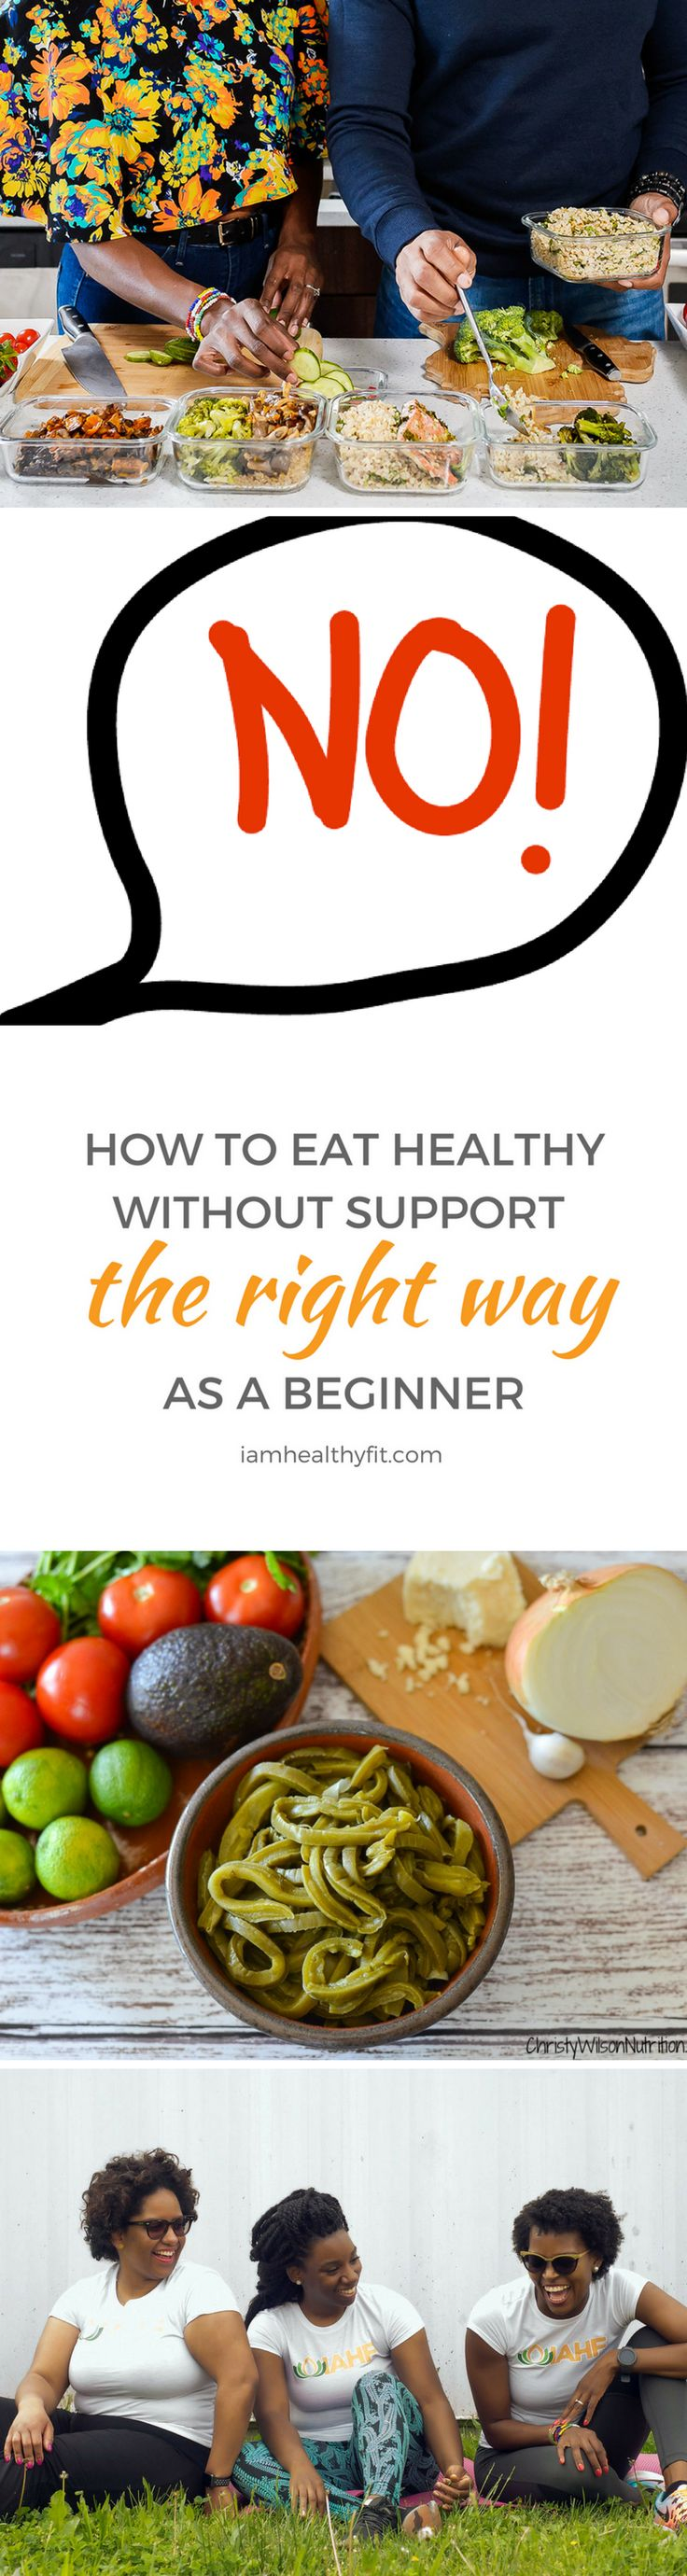 Learn everything you need to know to eat healthy without a support system as a beginner. Plus enjoy a bonus gift inside to get you started.